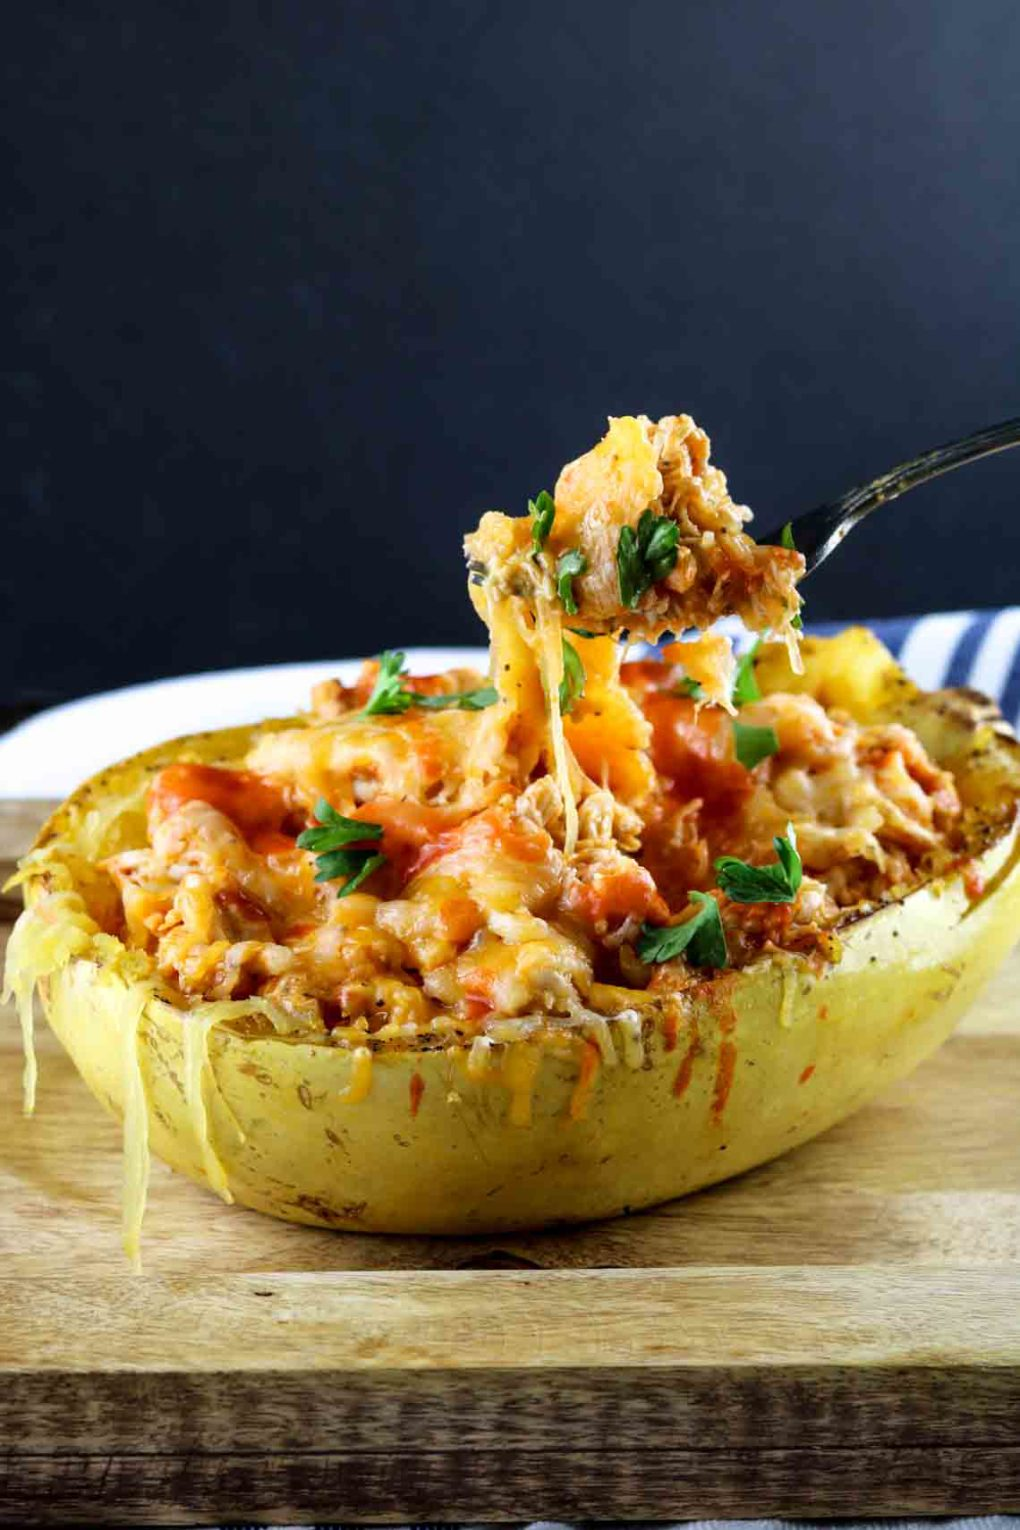 buffalo chicken spaghetti squash with someone pulling up a bite on a fork